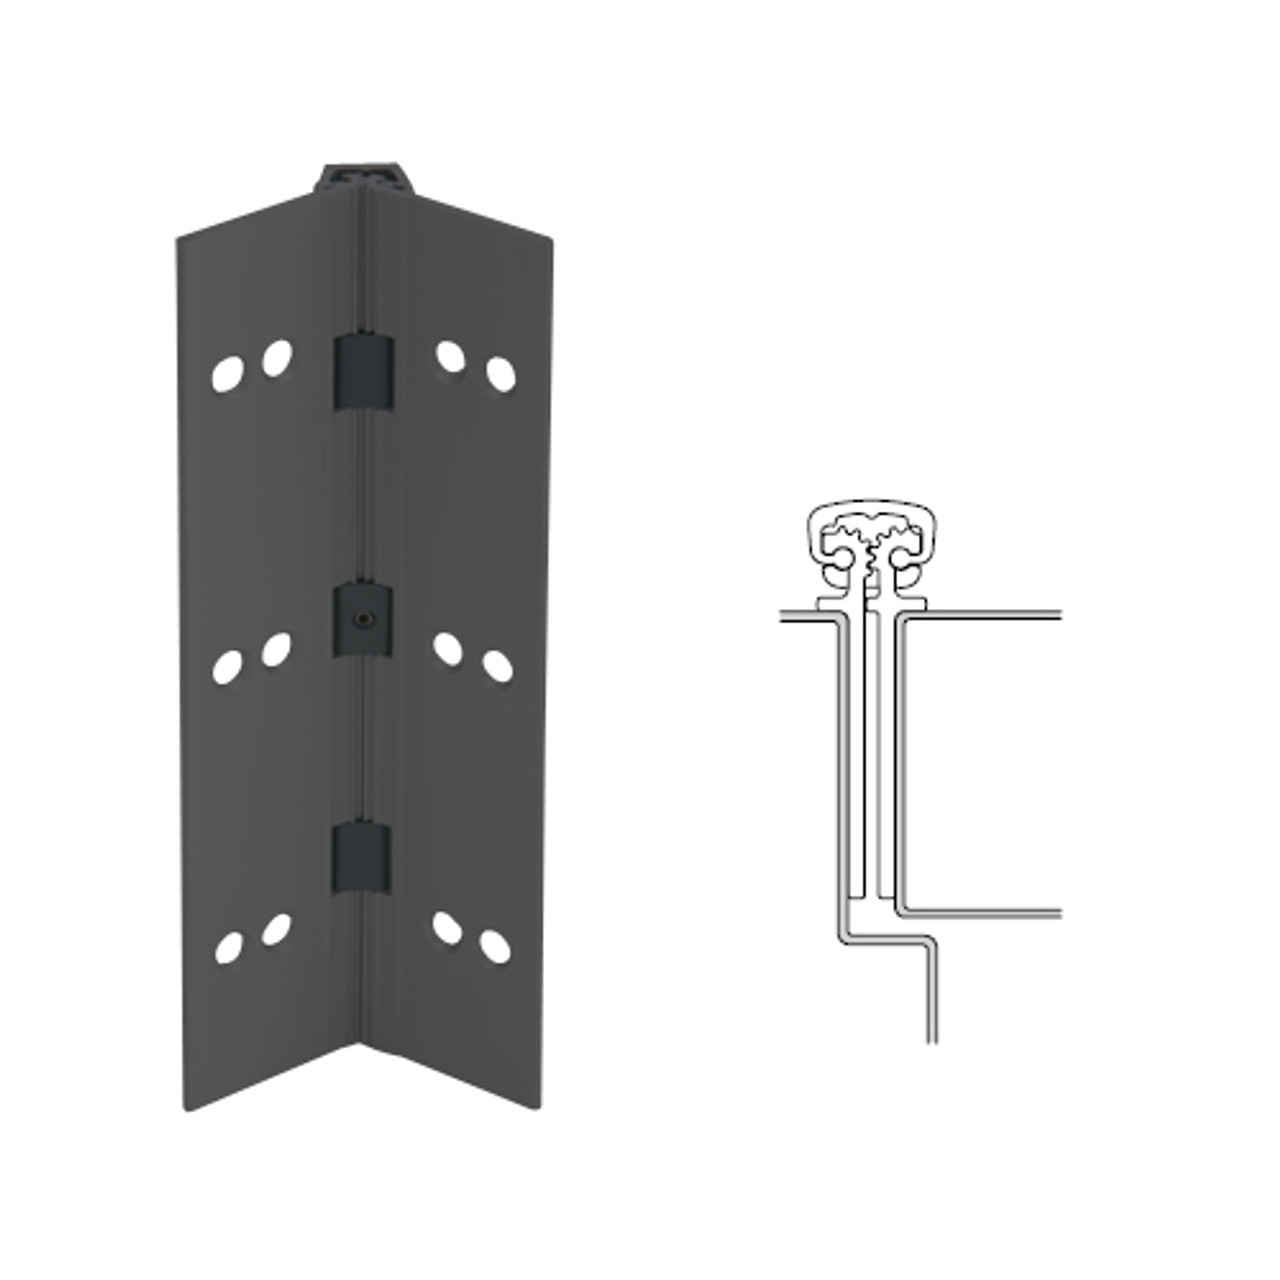 027XY-315AN-83-SECWDHM IVES Full Mortise Continuous Geared Hinges with Security Screws - Hex Pin Drive in Anodized Black